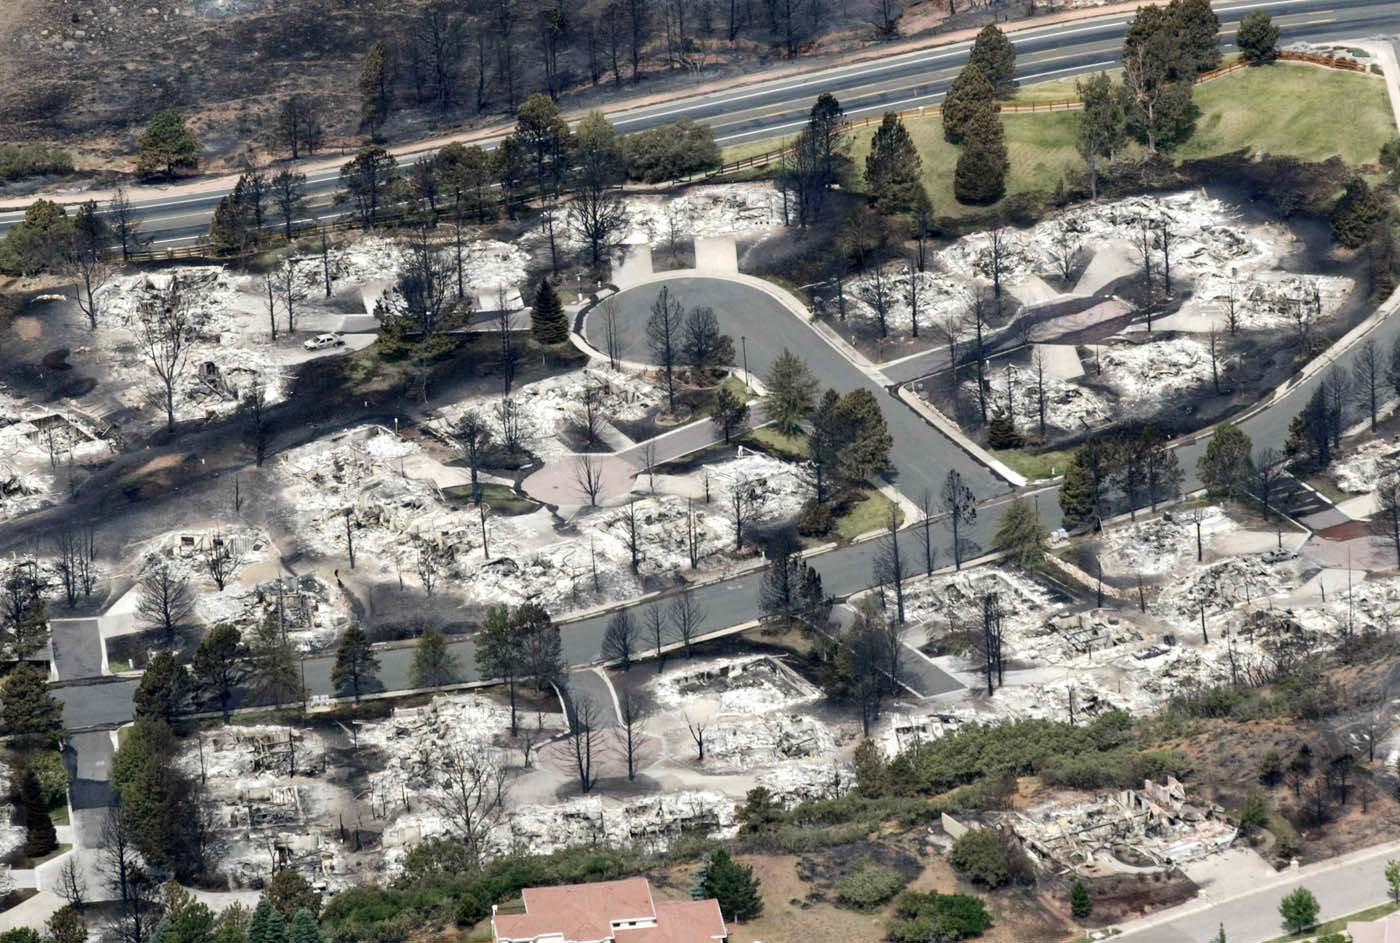 JUNE 28: Some of the hundreds of totally destroyed homes are seen in the aftermath of the Waldo Canyon fire in Colorado Springs, Colorado June 28, 2012. (Rick Wilking/Reuters)